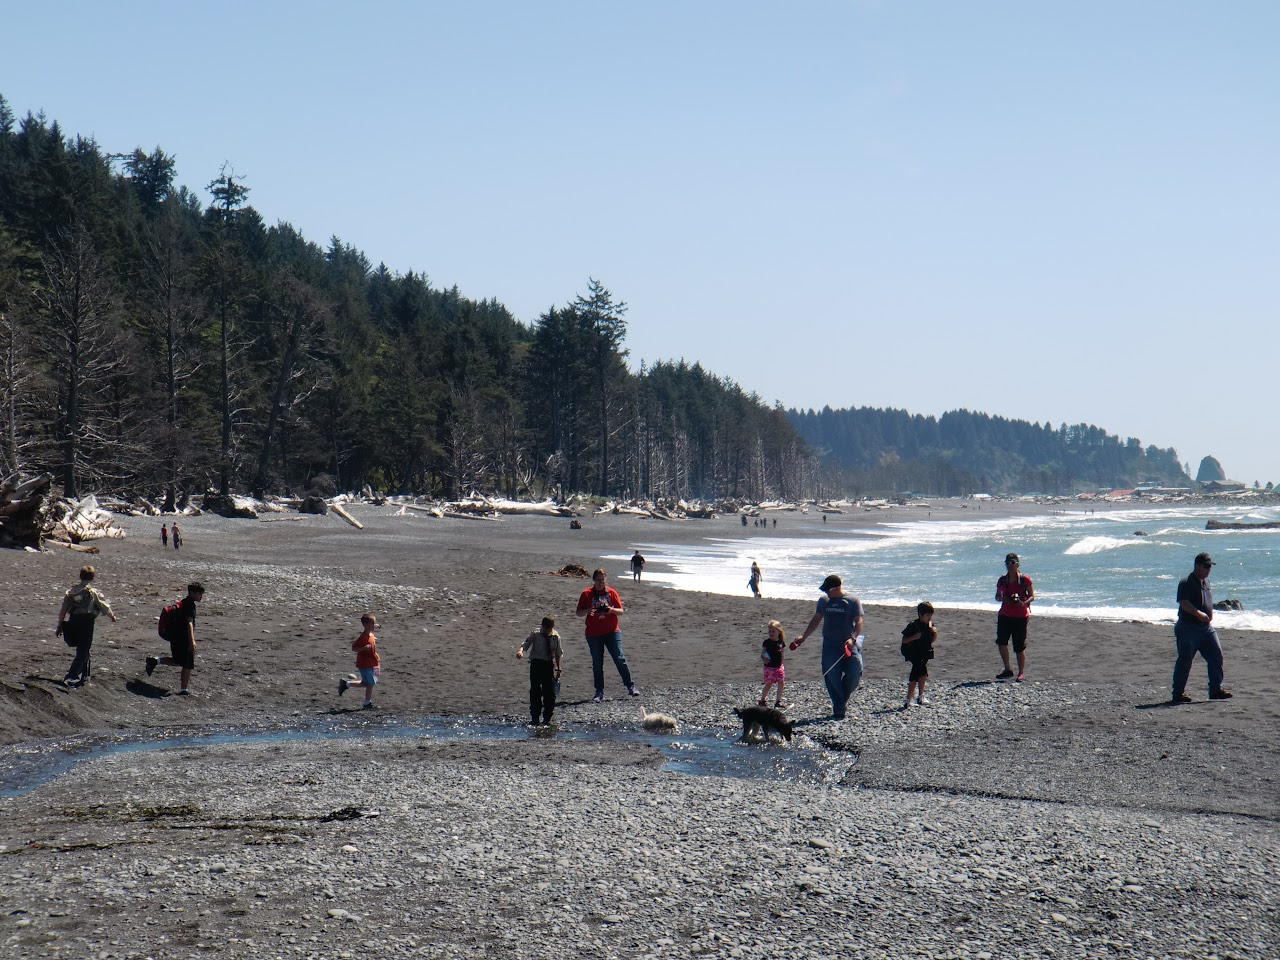 Crossing Ellen Creek at low tide